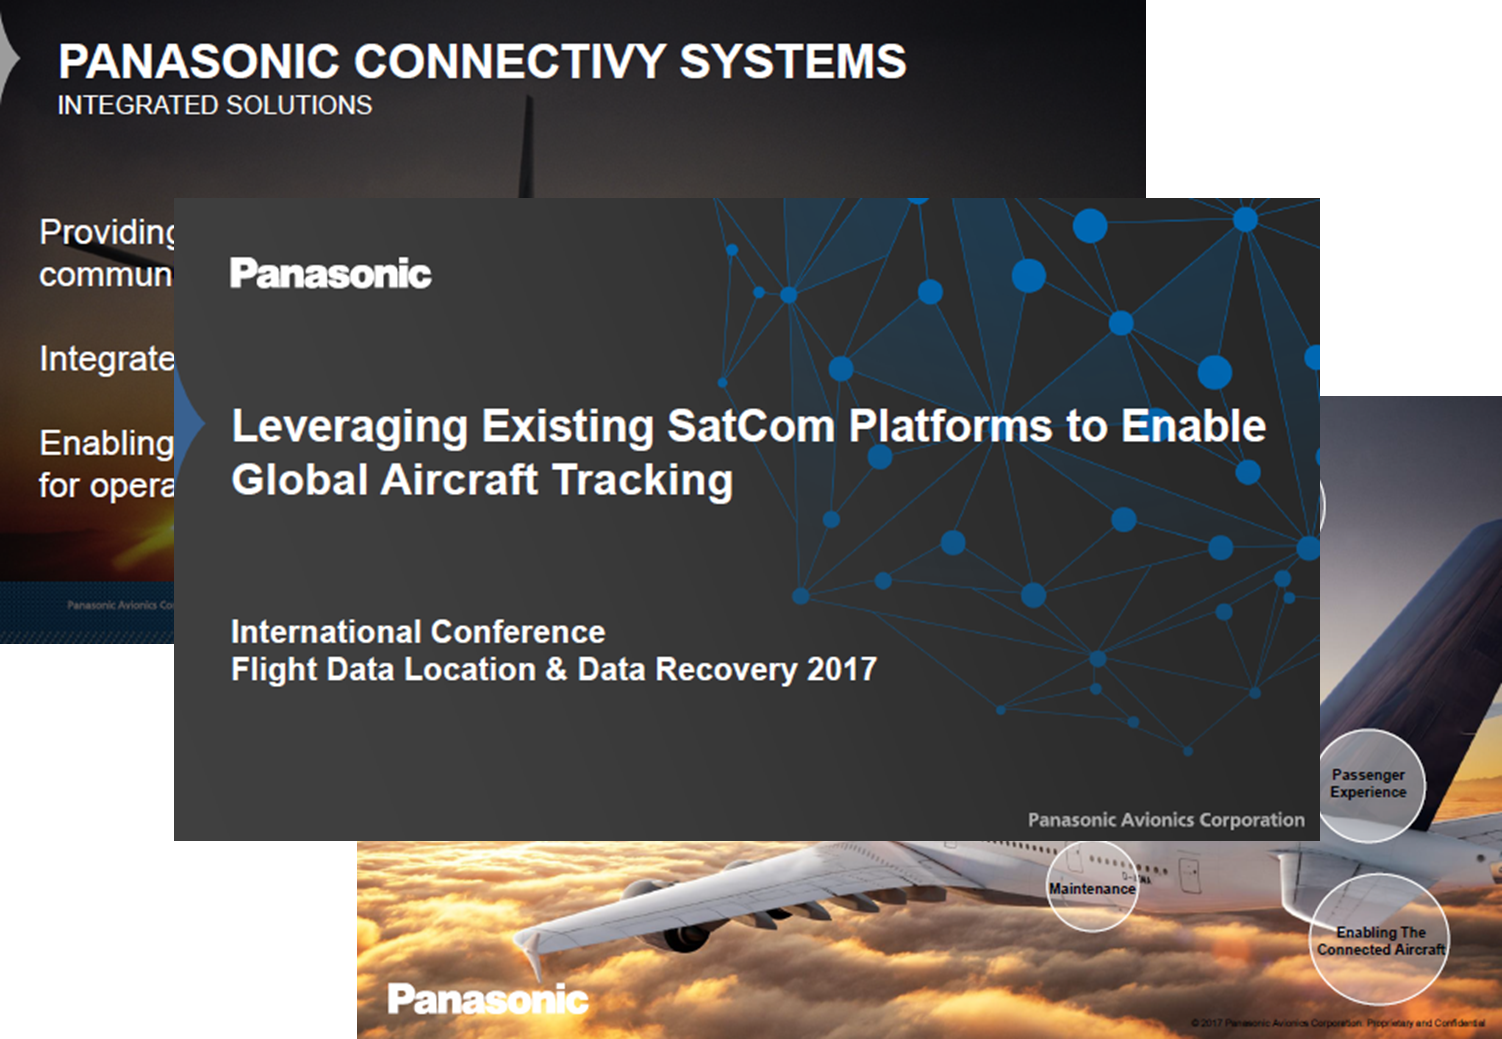 Presentation by Jeffrey Rex from Panasonic about Enabling Global Aircraft Tracking